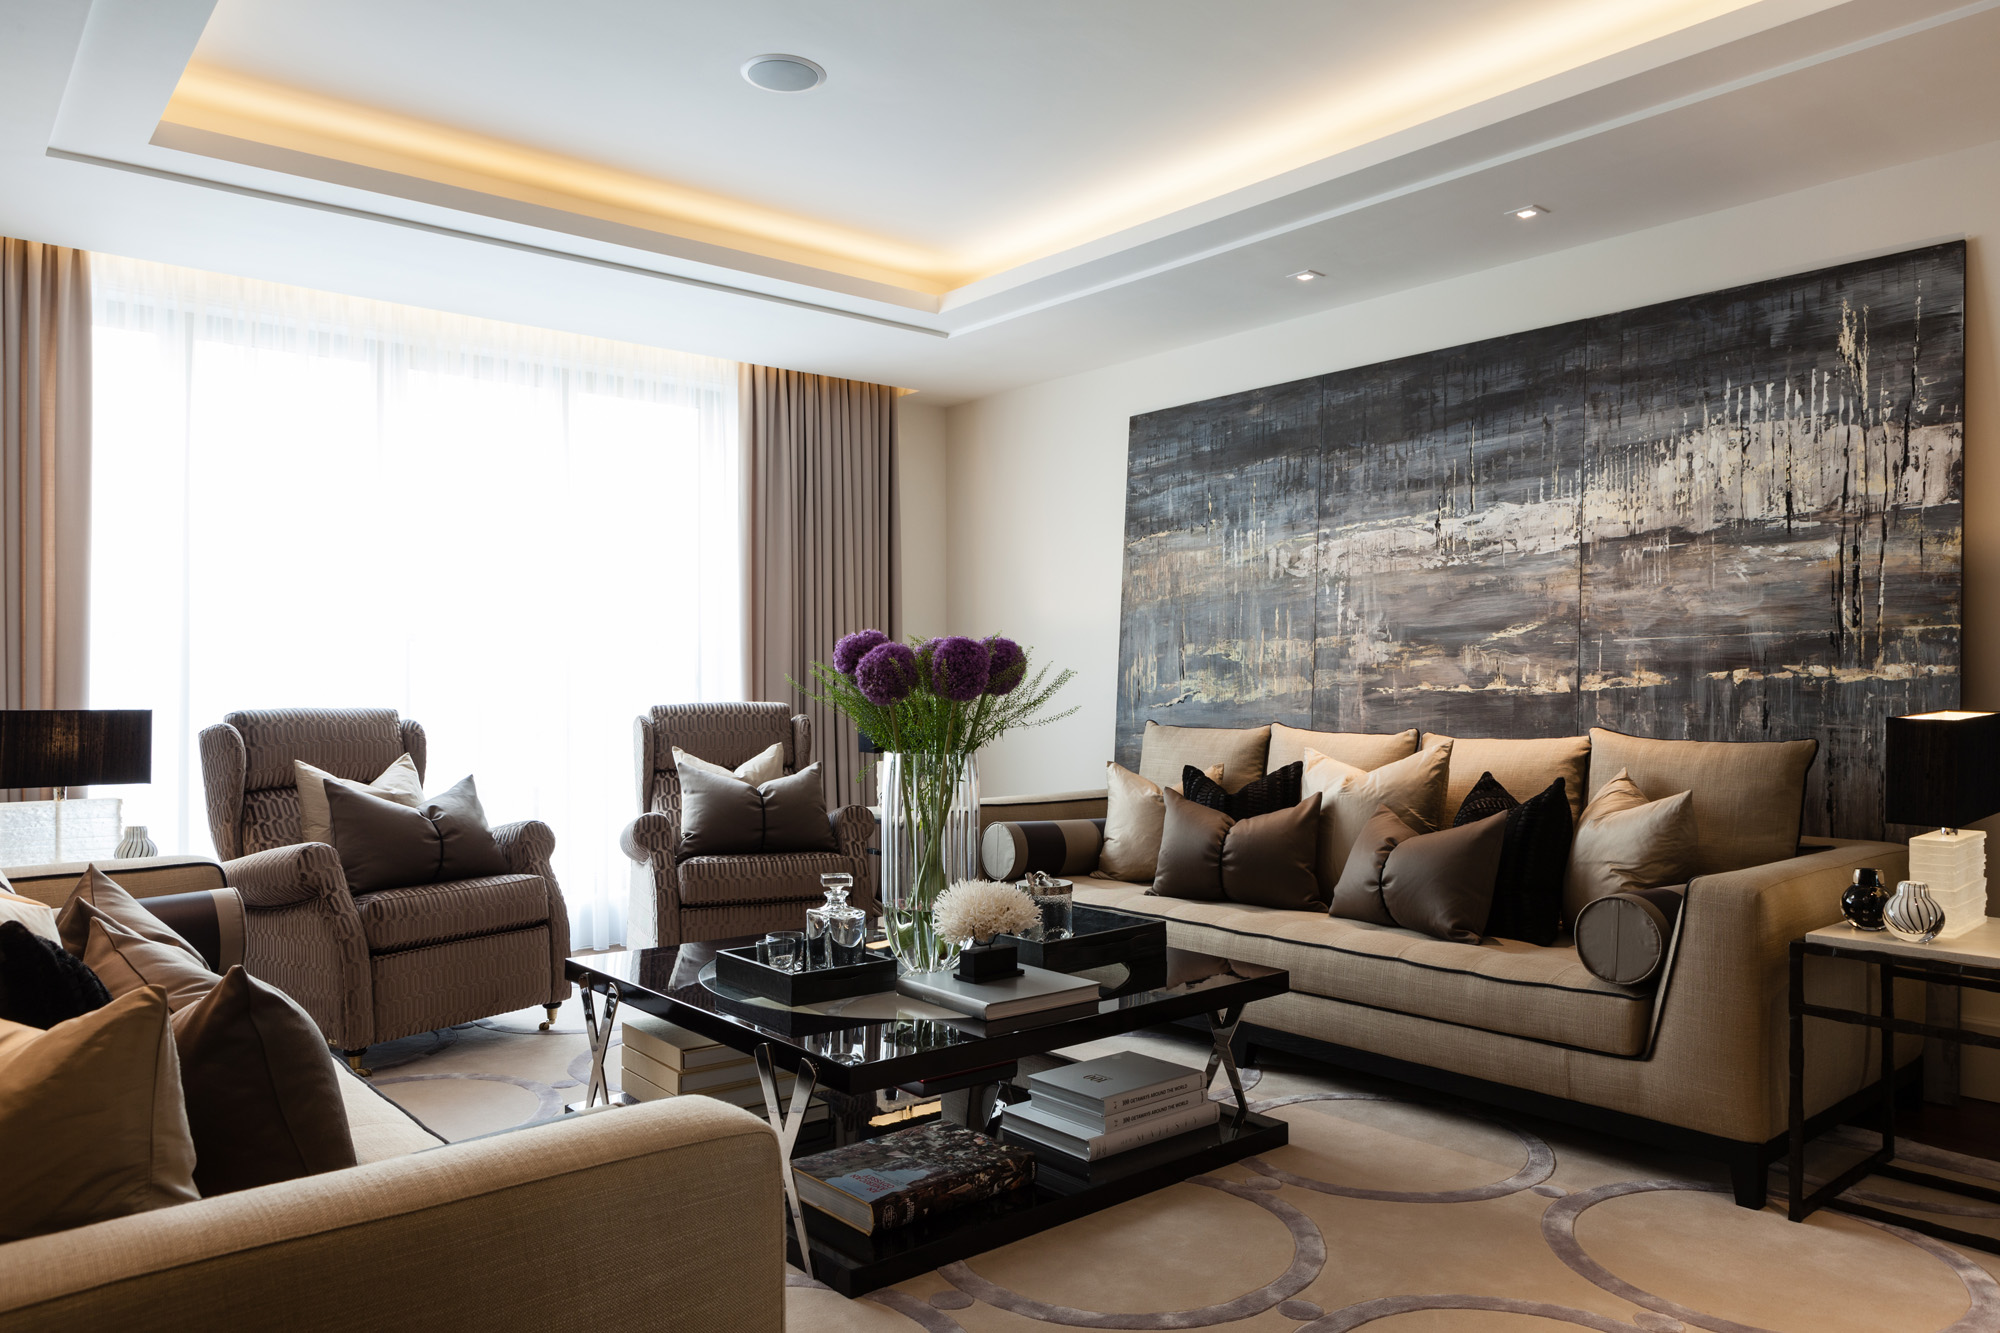 Katz Designed A Warm Functional Family Home With E For Formal Entertainment And Kid Zone In The Heart Of Belgravia